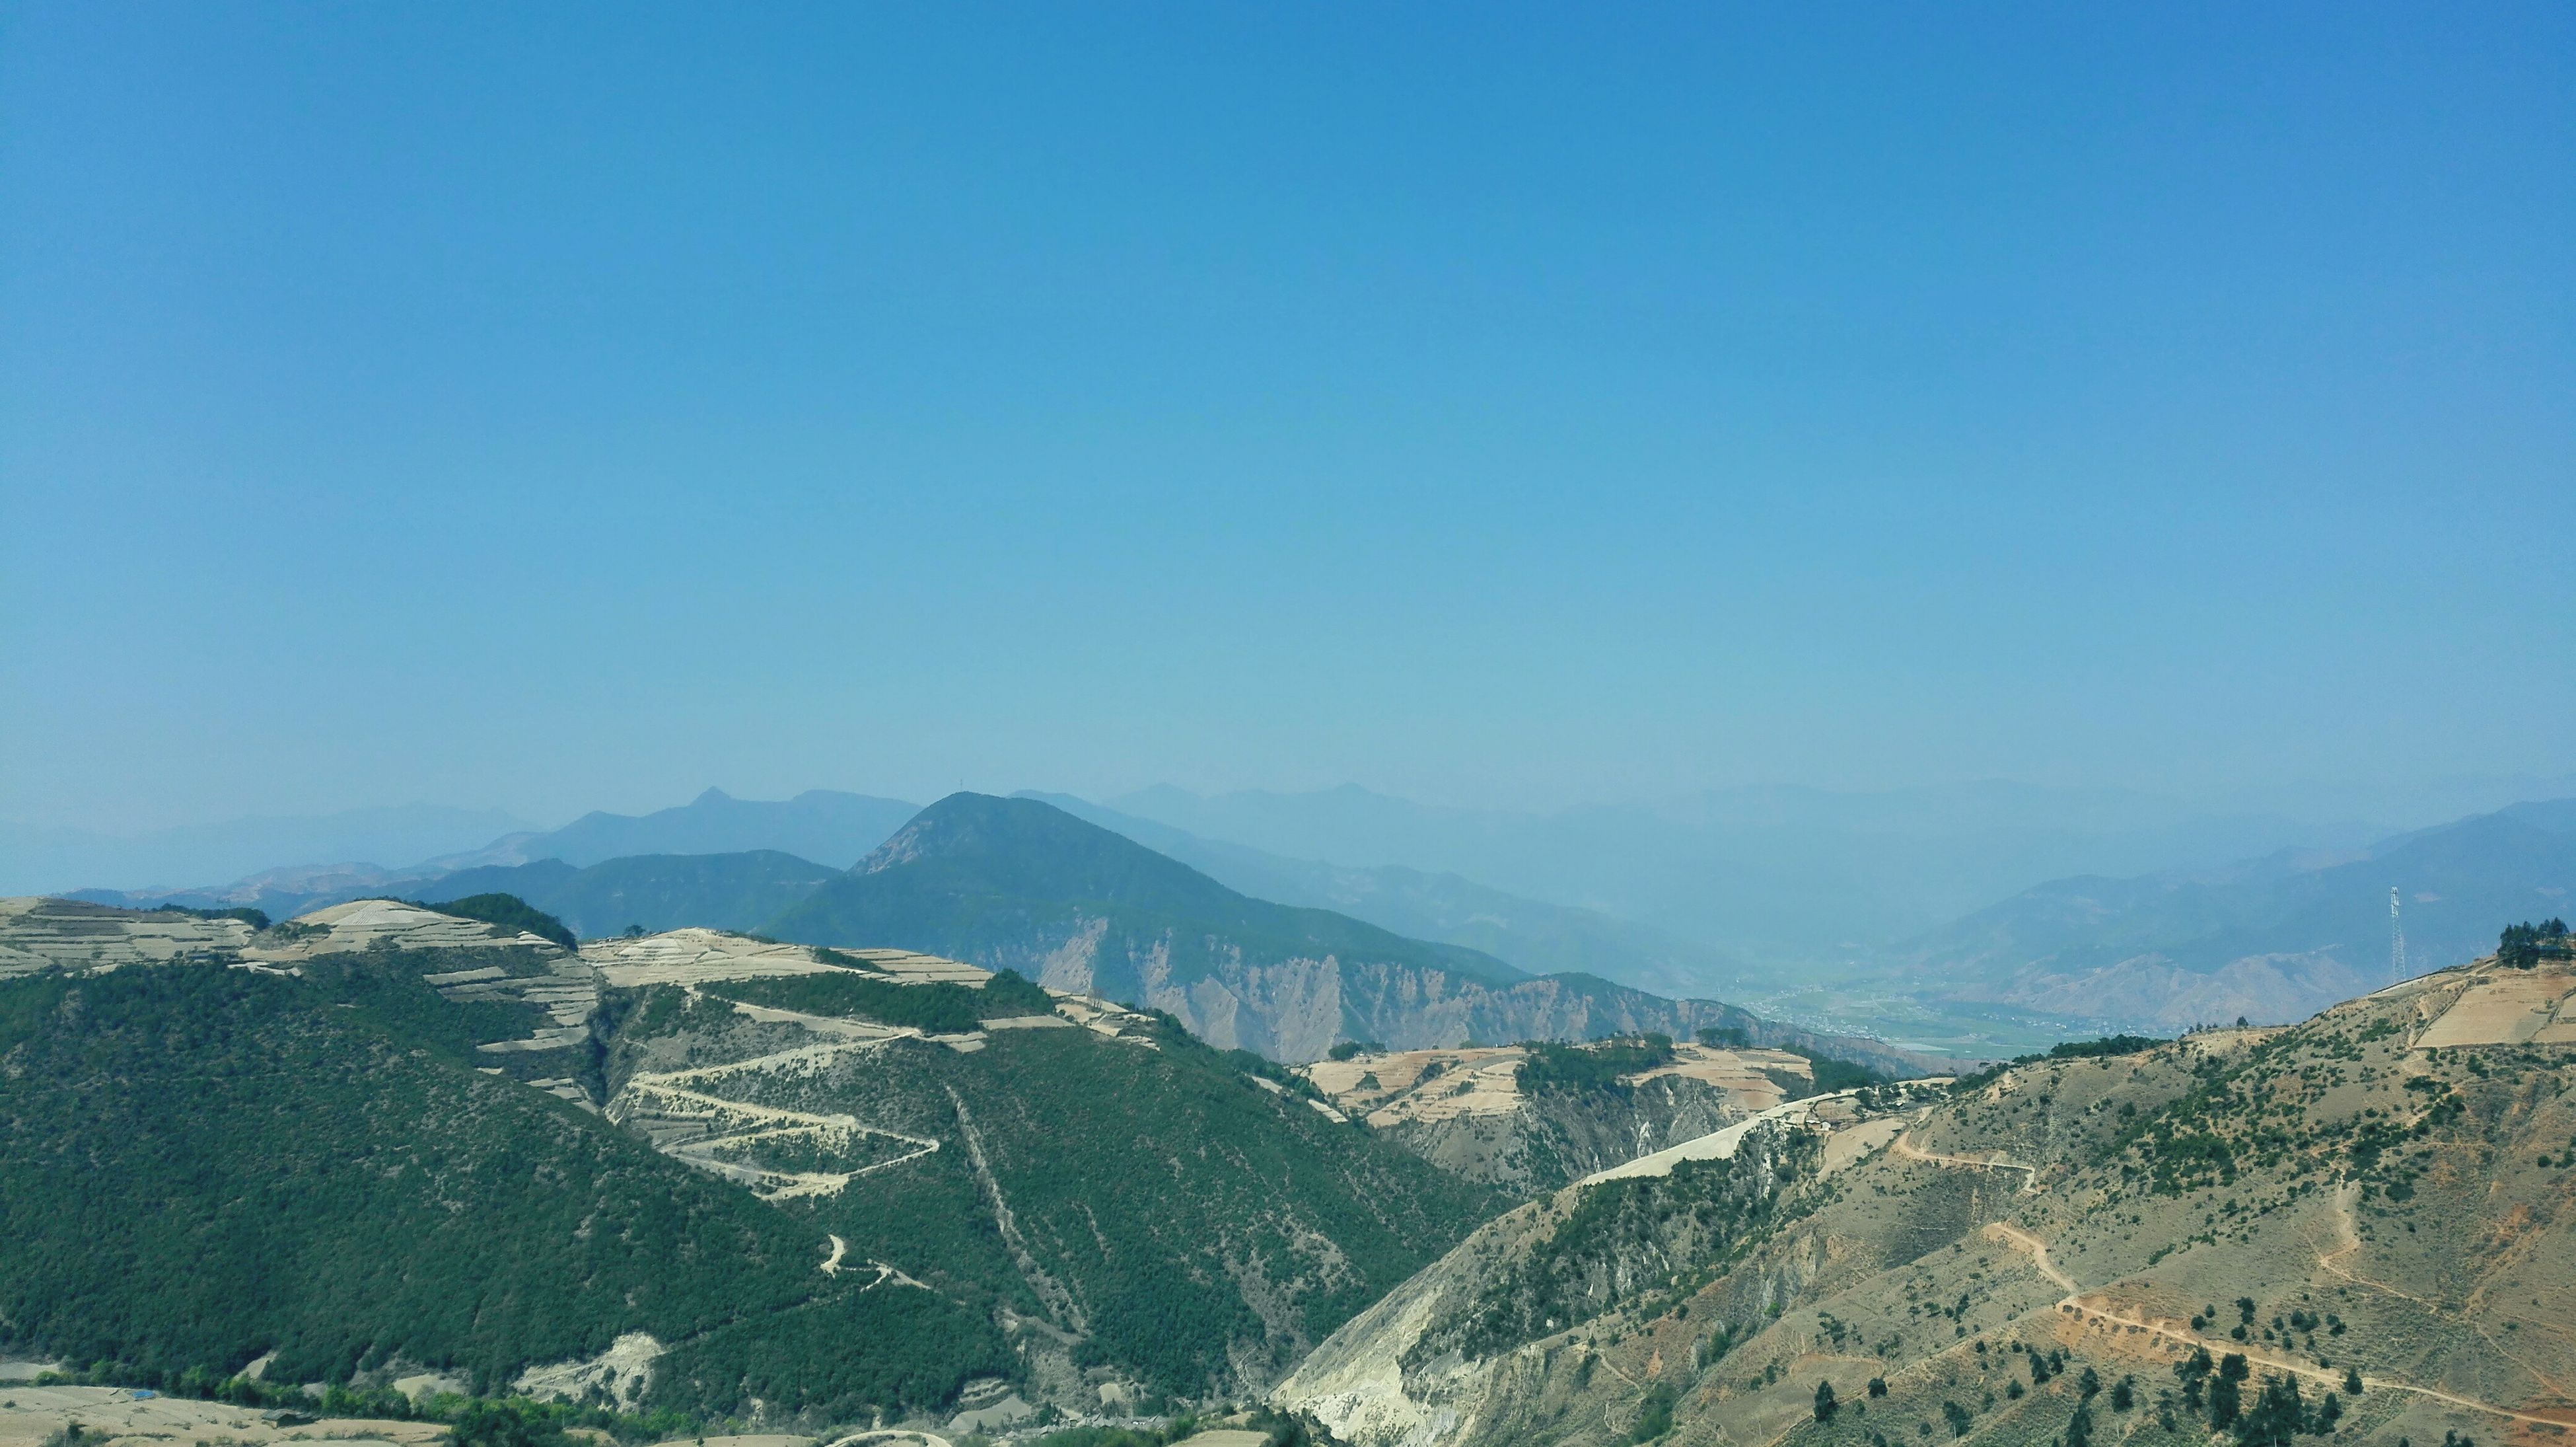 mountain, clear sky, copy space, tranquil scene, scenics, tranquility, blue, mountain range, landscape, beauty in nature, nature, non-urban scene, idyllic, remote, day, outdoors, no people, high angle view, sky, physical geography